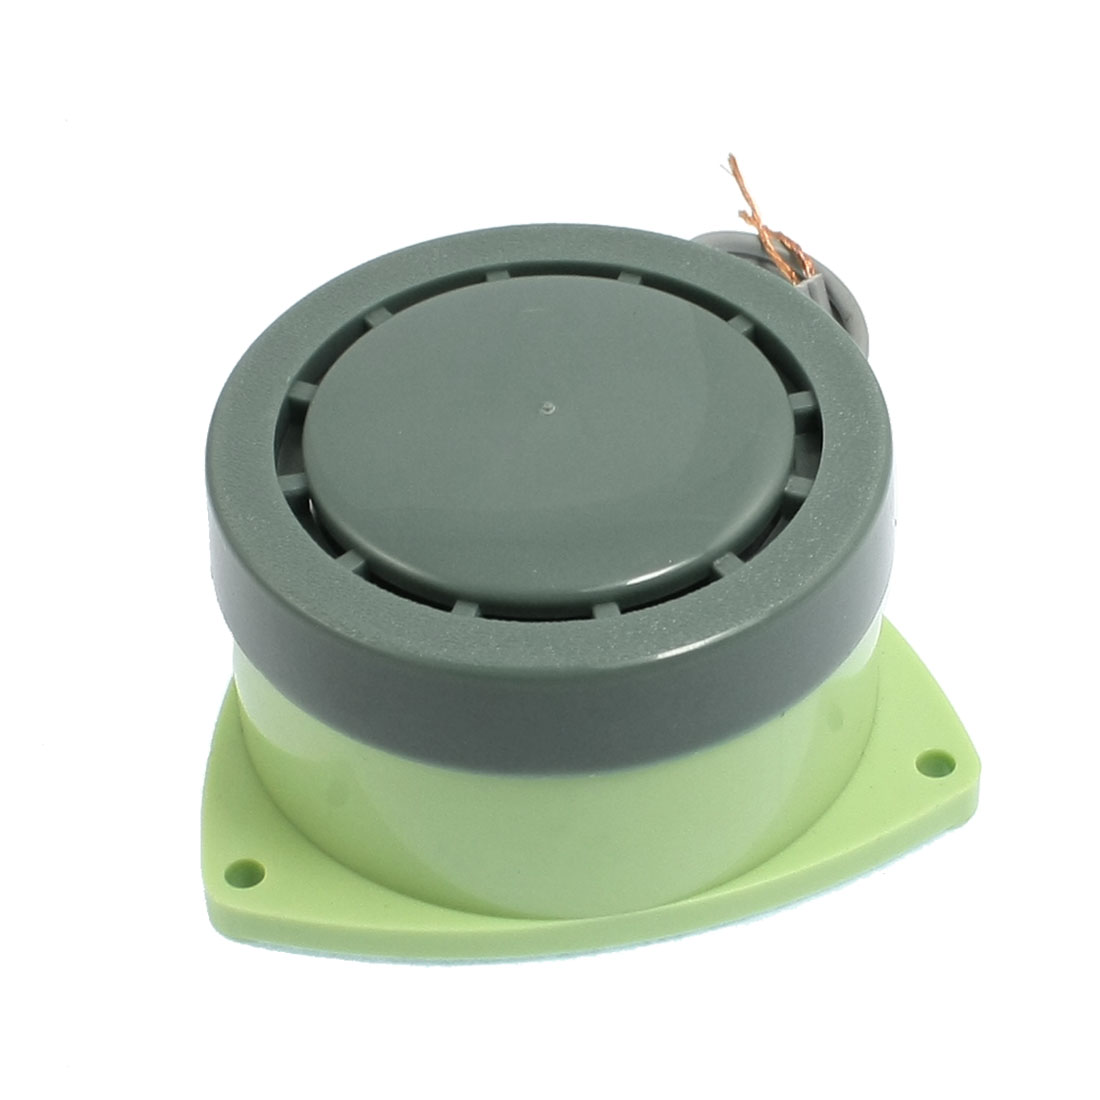 AC 210-250V 50-60Hz 8VA Surface Mounting Triangle Buzzer Alarm